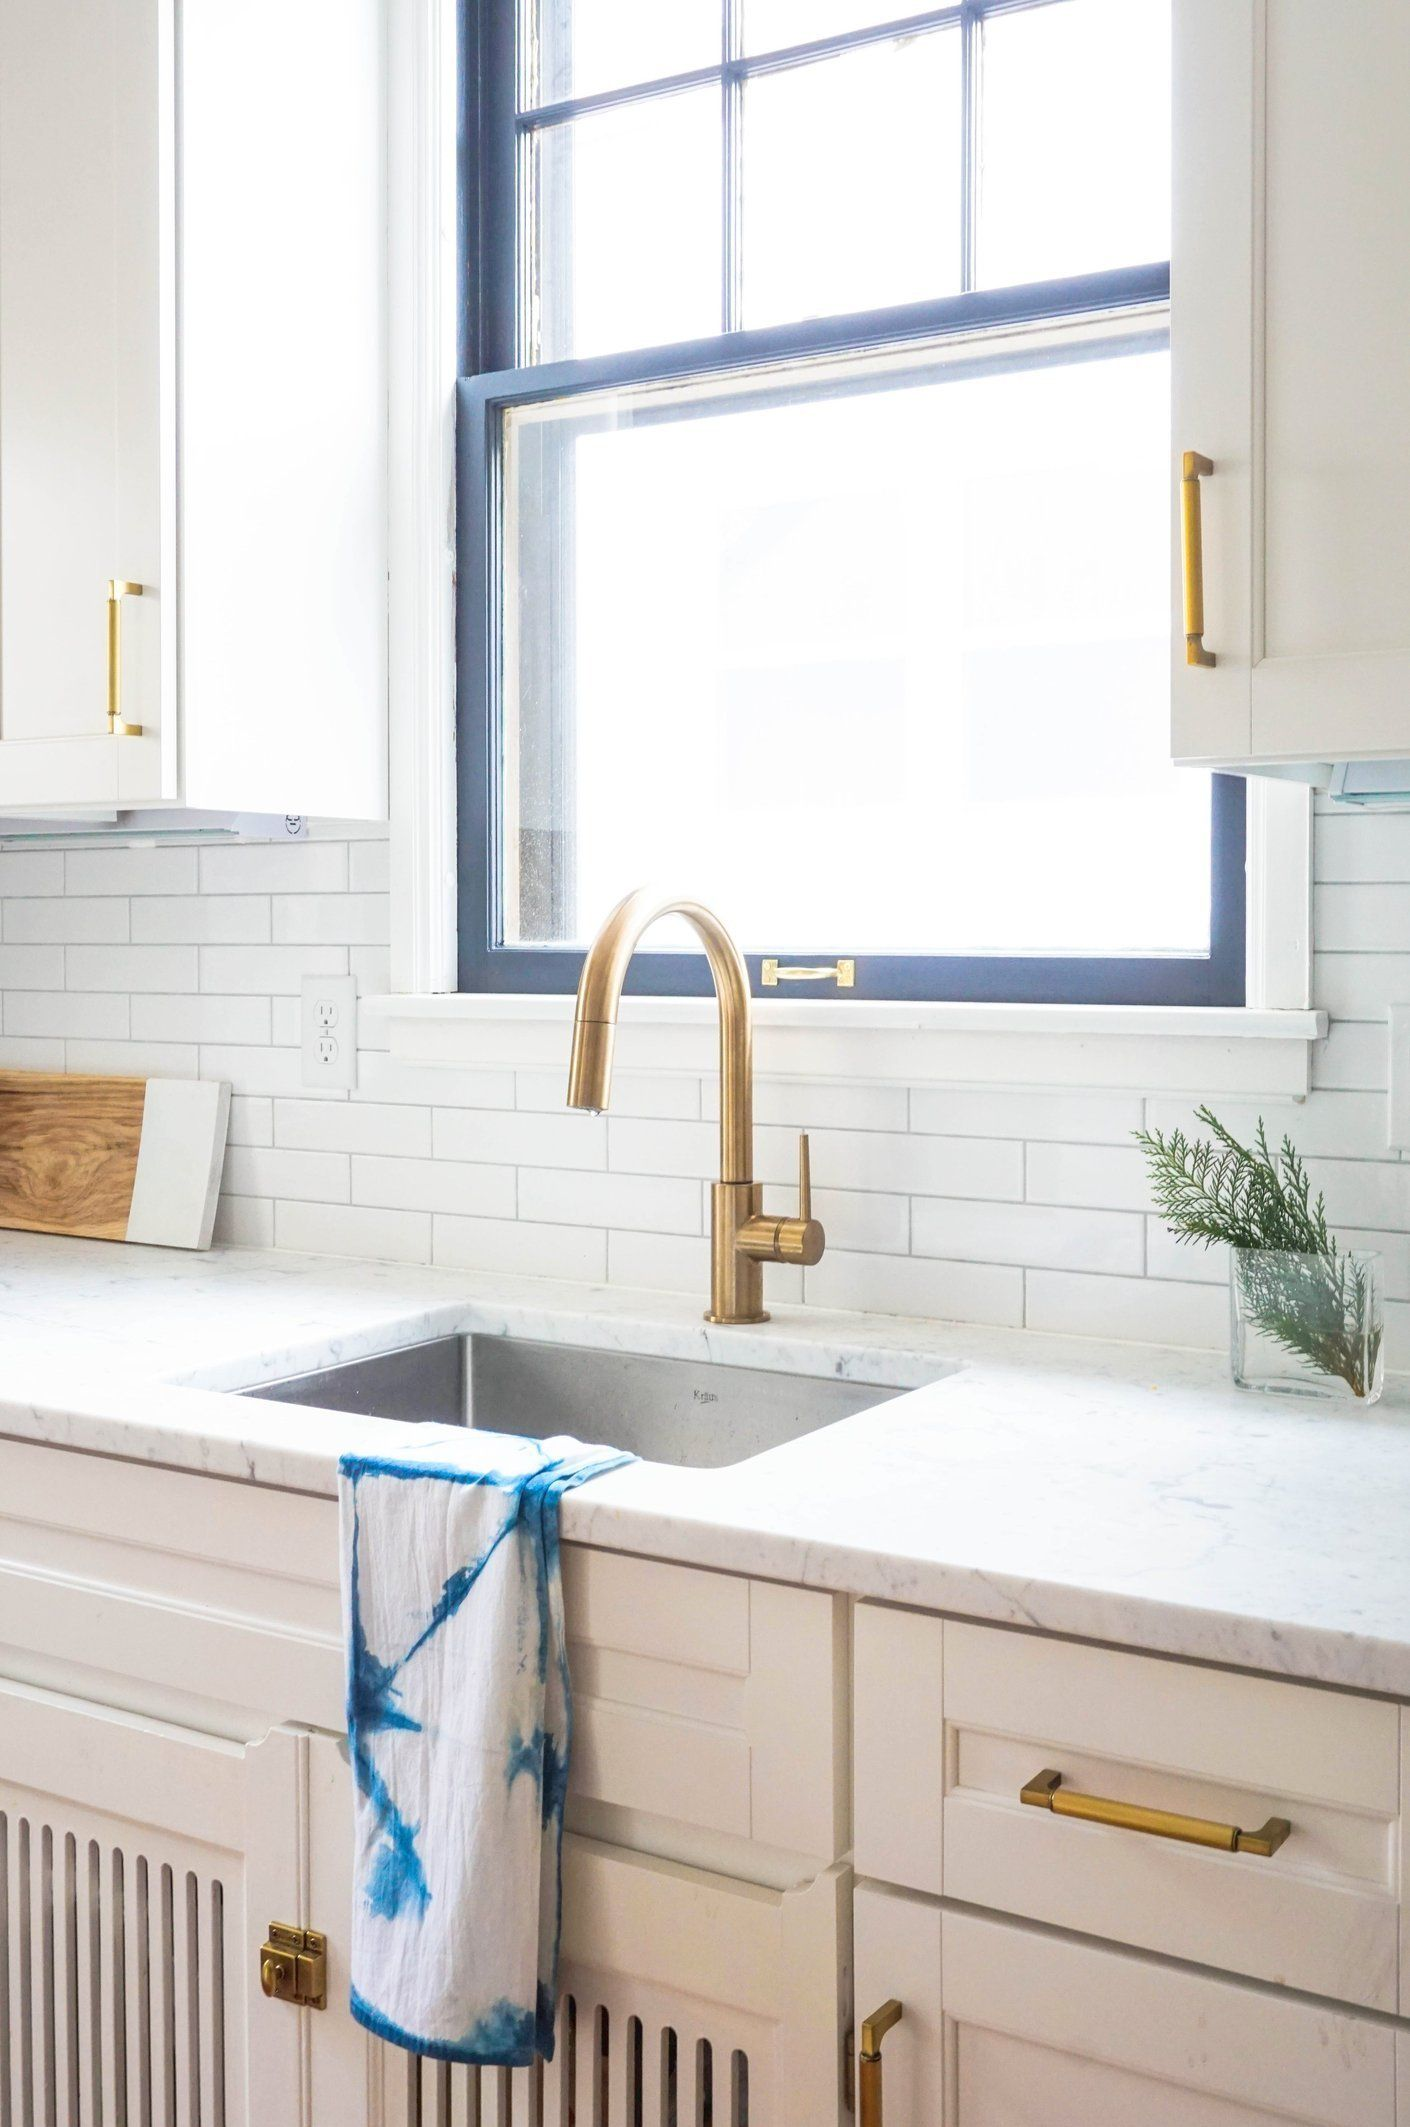 Style boosts ideas for upgrading a simple kitchen sink window